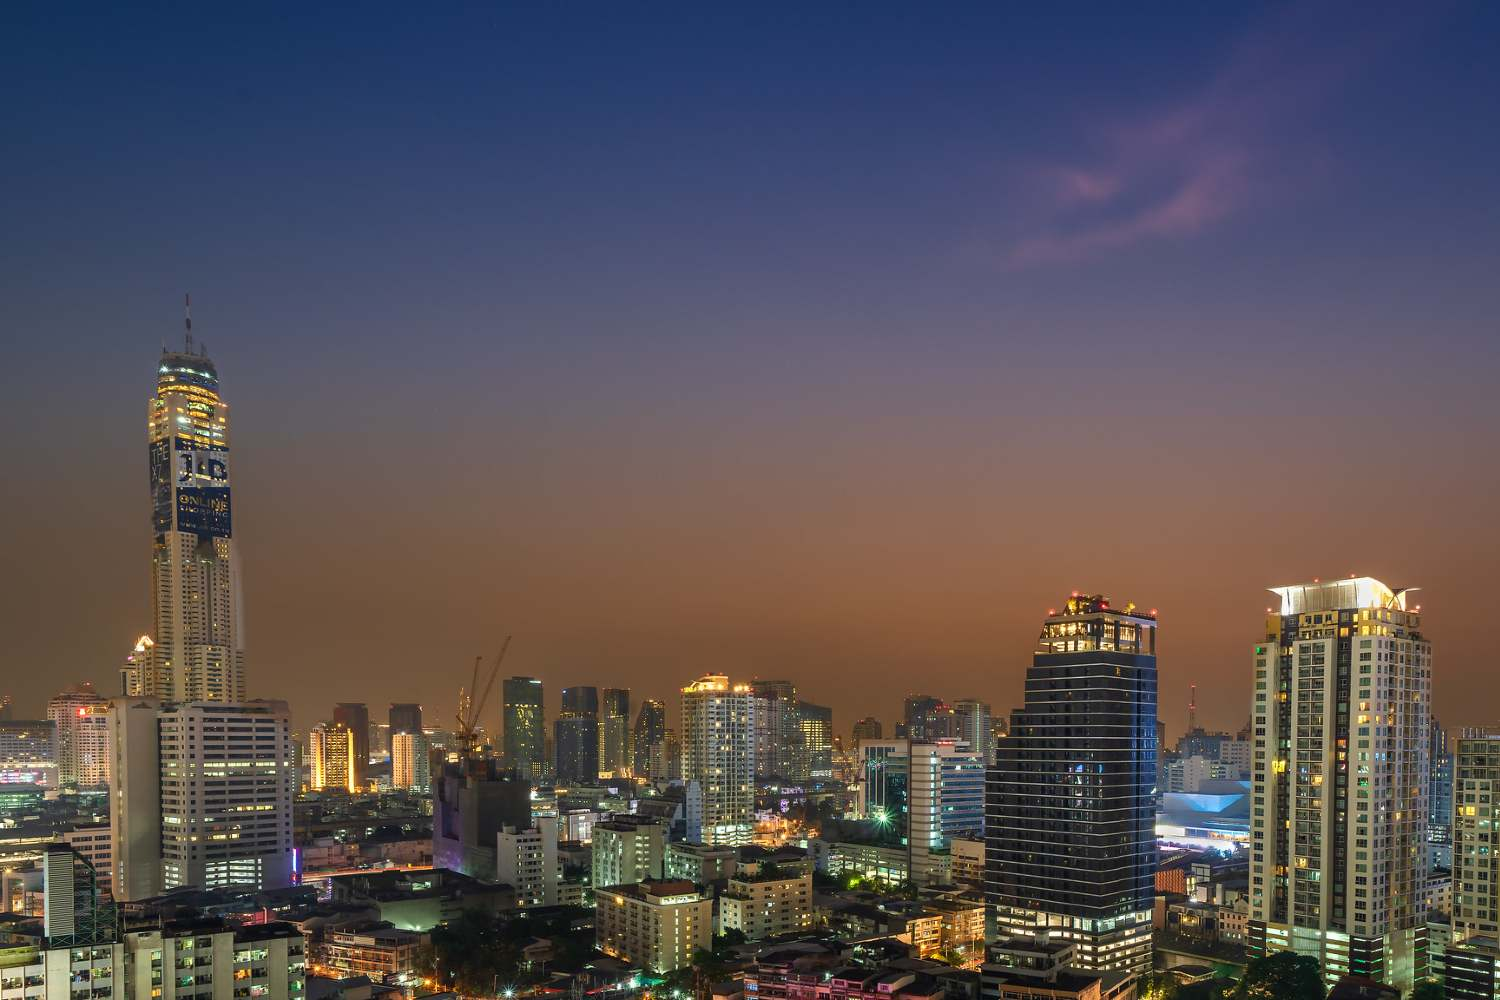 View over the sky line of Bangkok with the Baiyoke Sky Bar in the distance